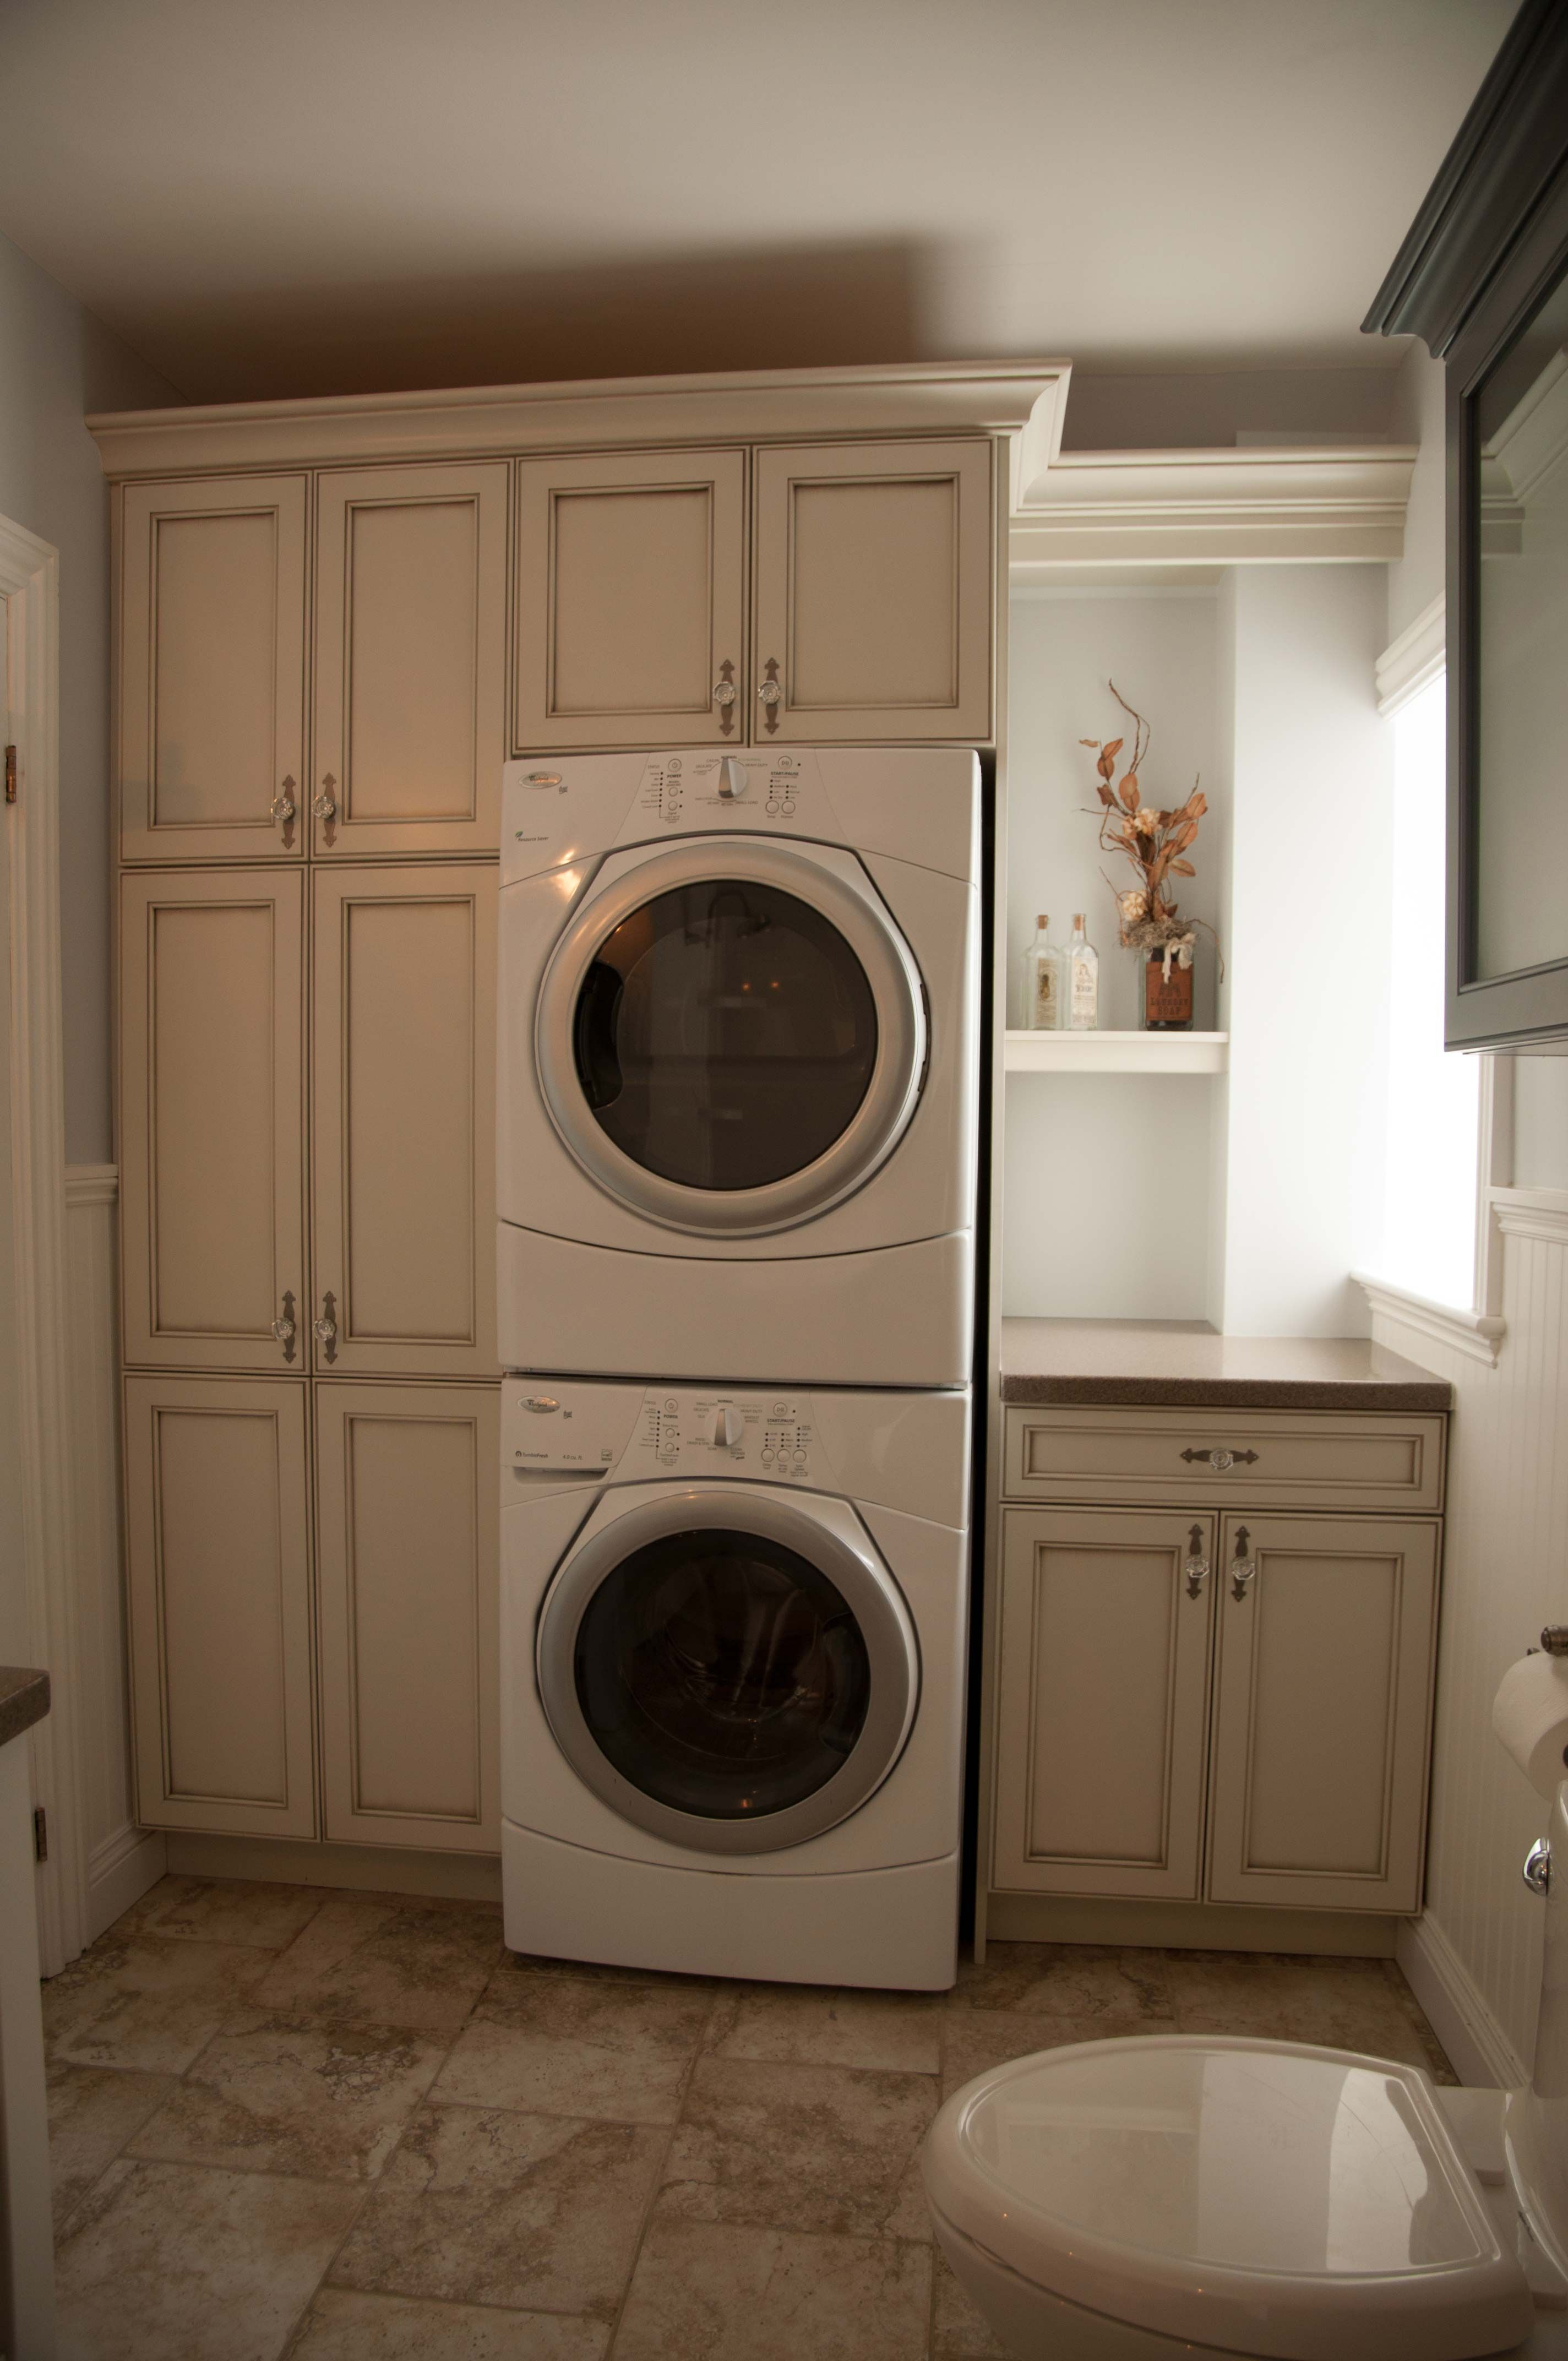 Gallery | Laundy room, Interior, Laundry